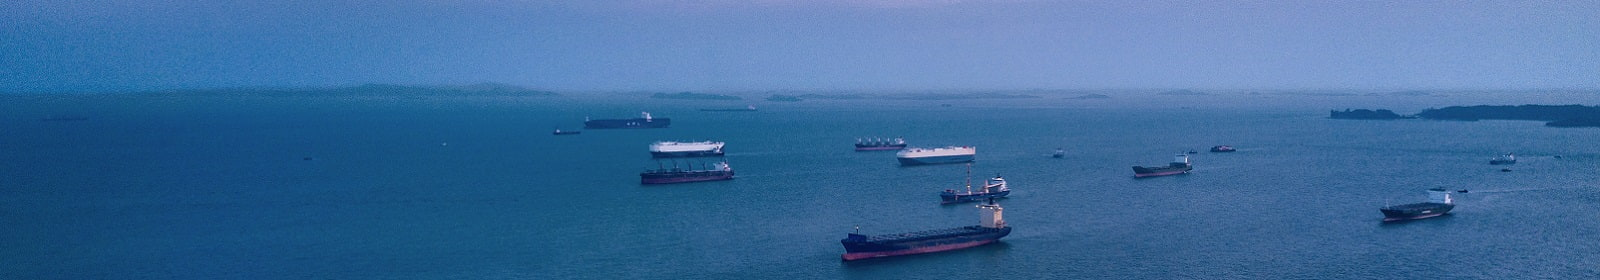 Cargo ships wait offshore to dock